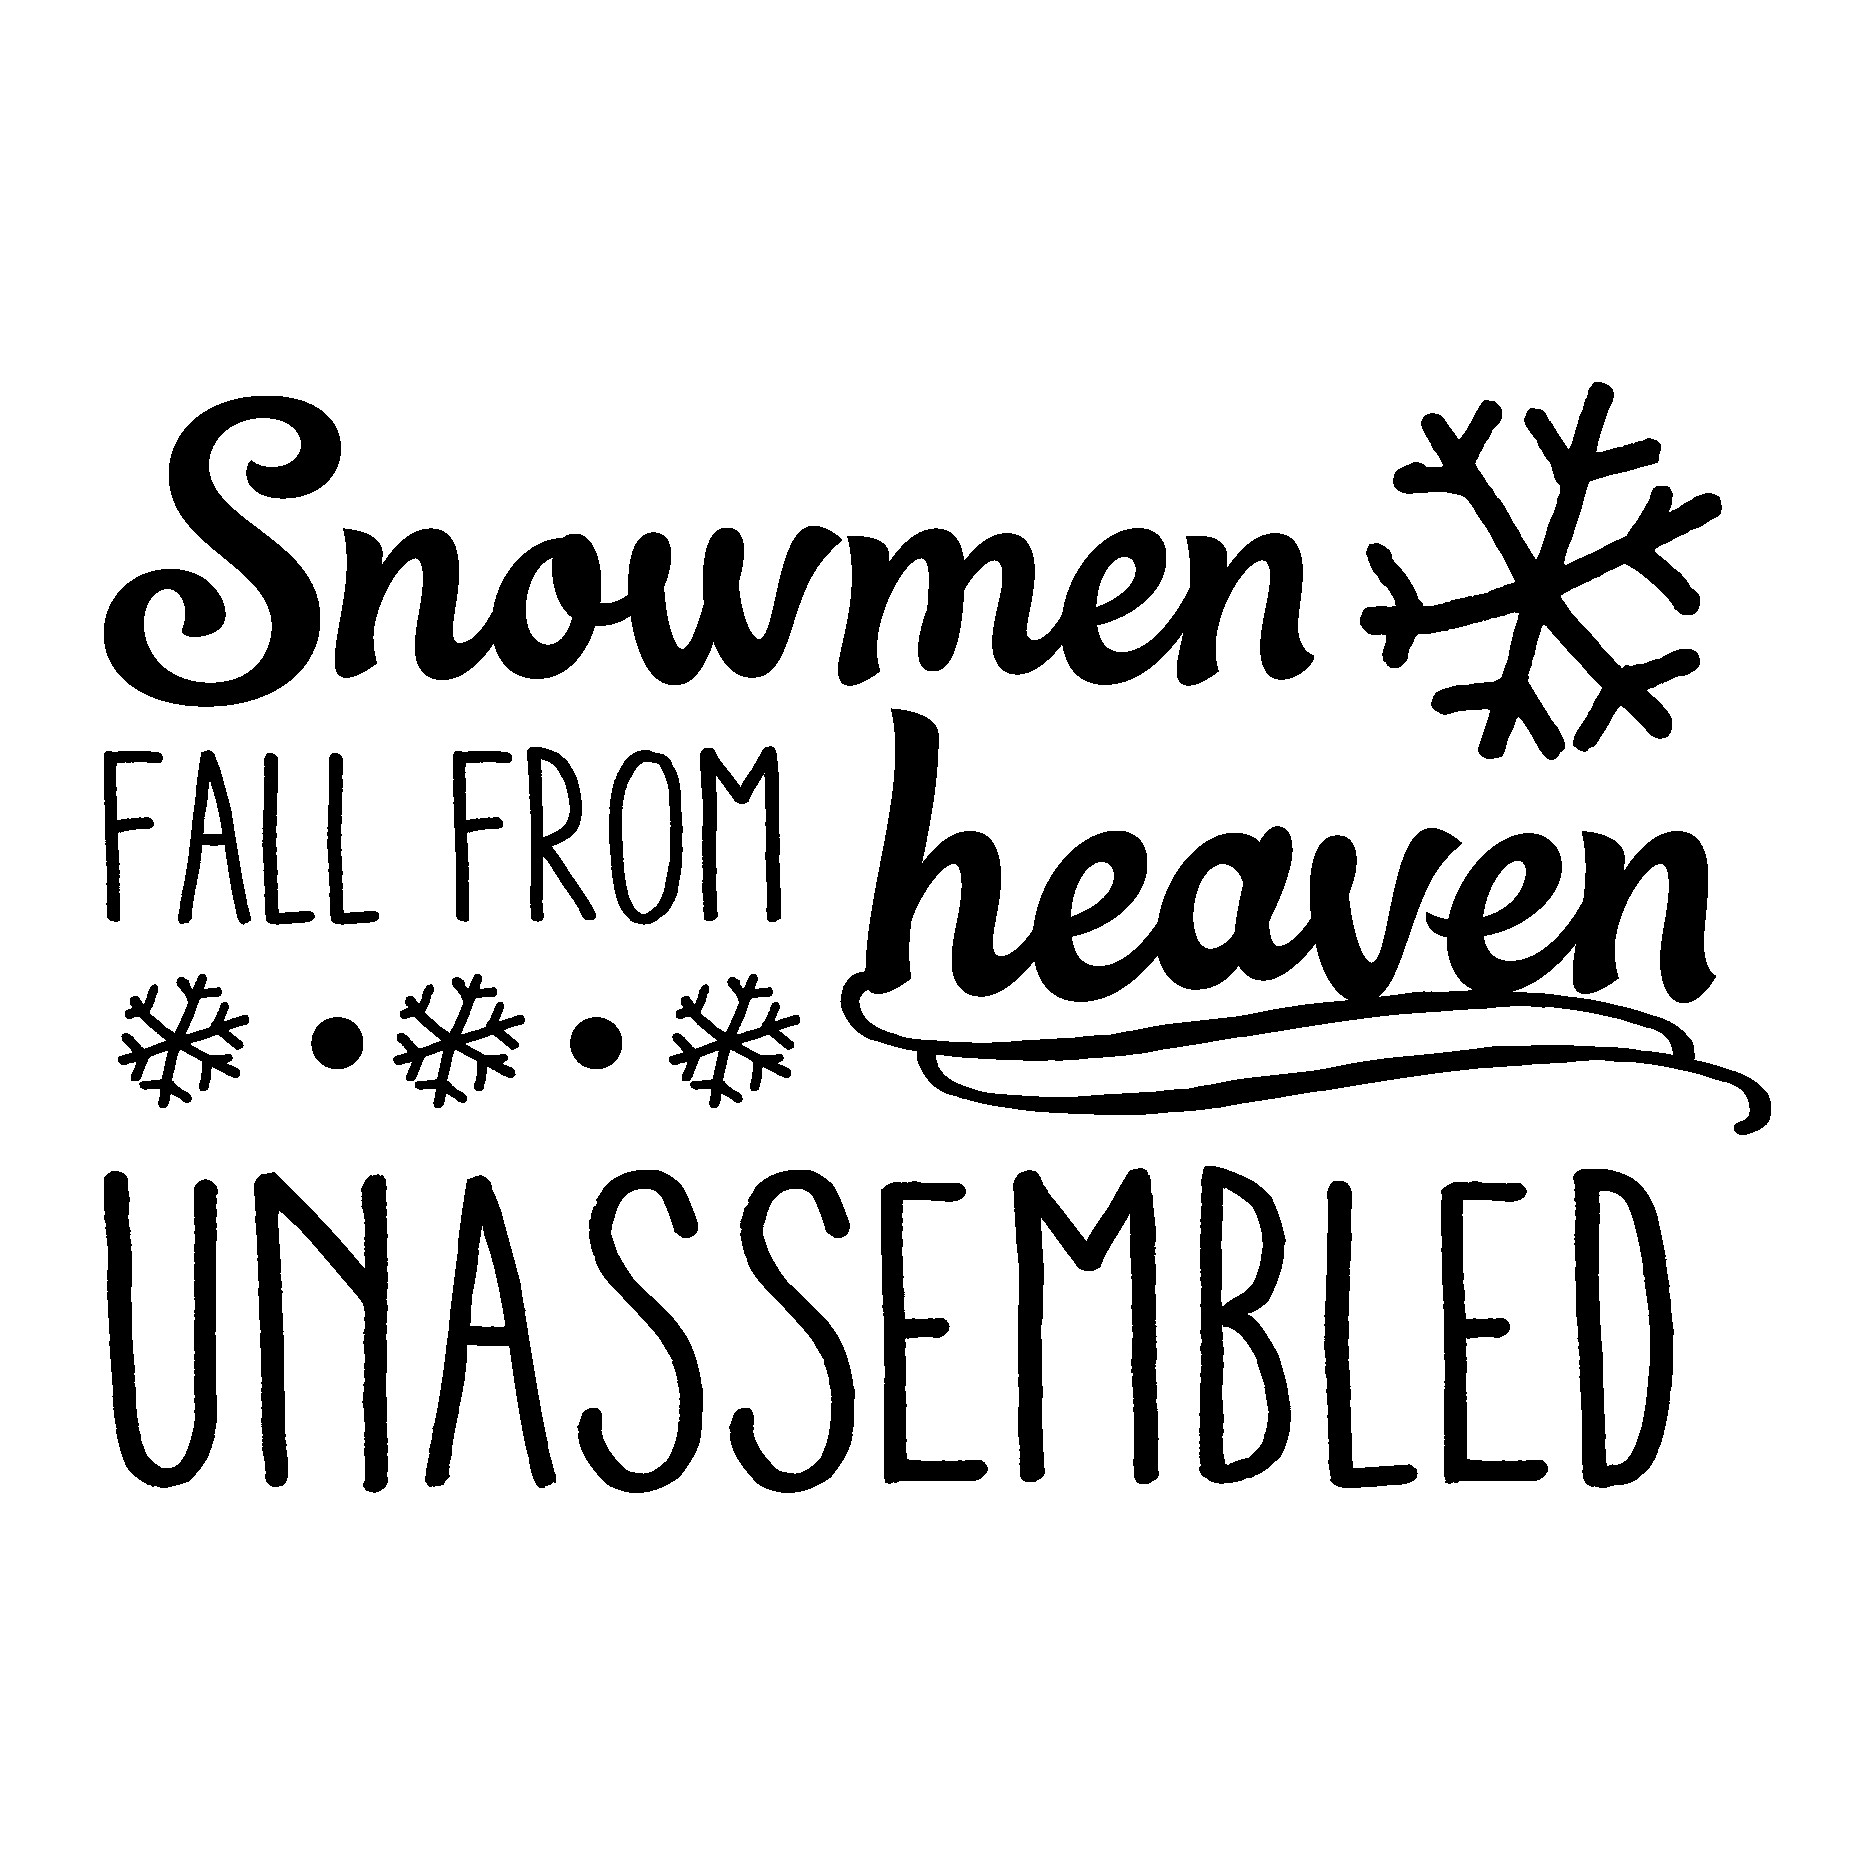 Snowmen Fall From Heaven Wall Quotes Decal